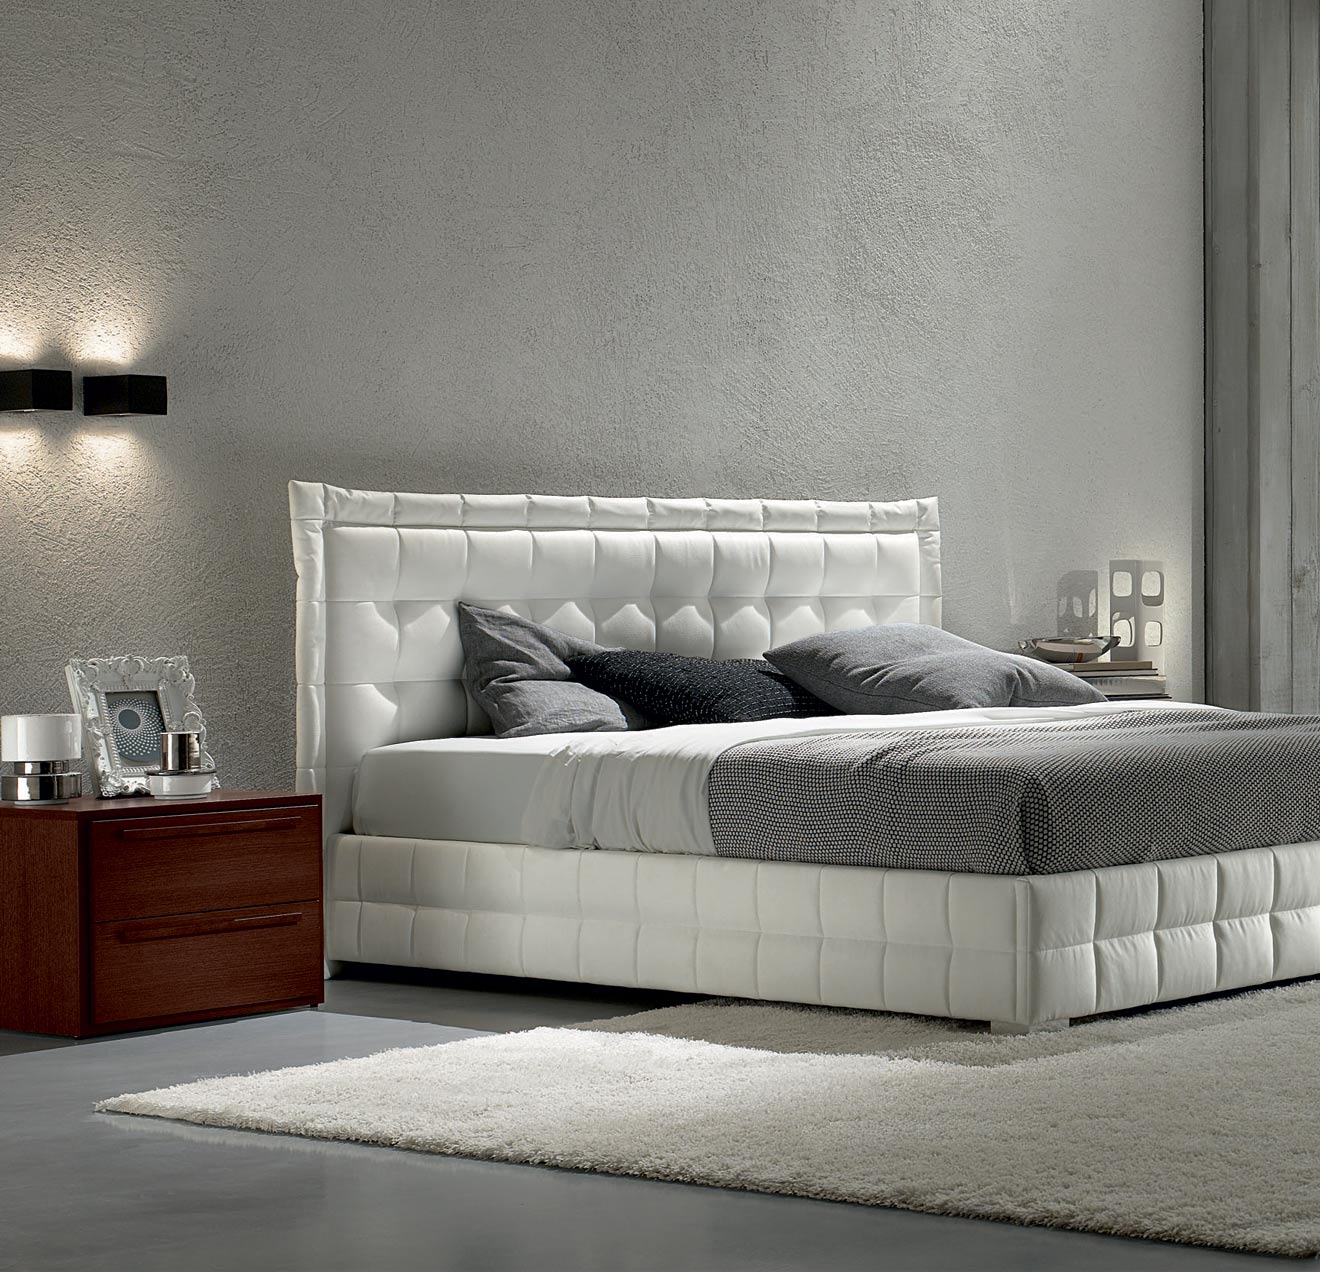 gallery furniture bedroom sets 30 awesome bedroom furniture design ideas 15372